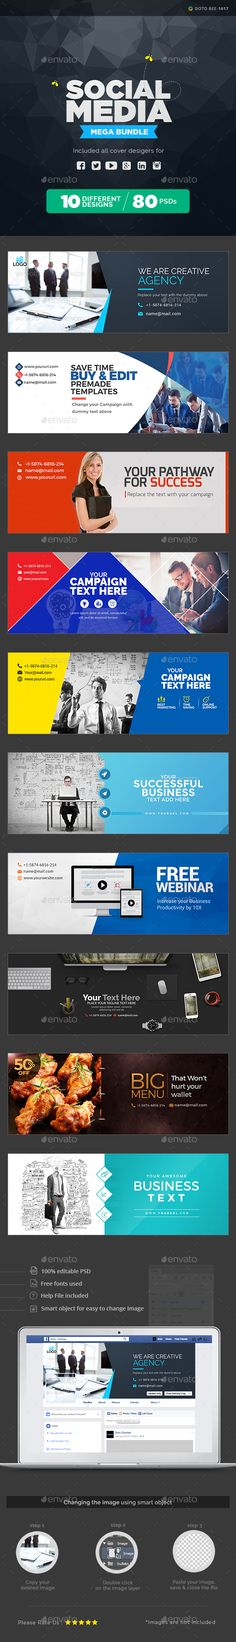 Buy Multi Purpose Social Media Pack - 10 Sets by Hyov on GraphicRiver. Make a statement with this Social Media pack that puts you in the spotlight. Social Media Packages, 100 Free Fonts, Image Font, Visual Communication, New Friends, The Help, Youtube, Purpose, Web Design